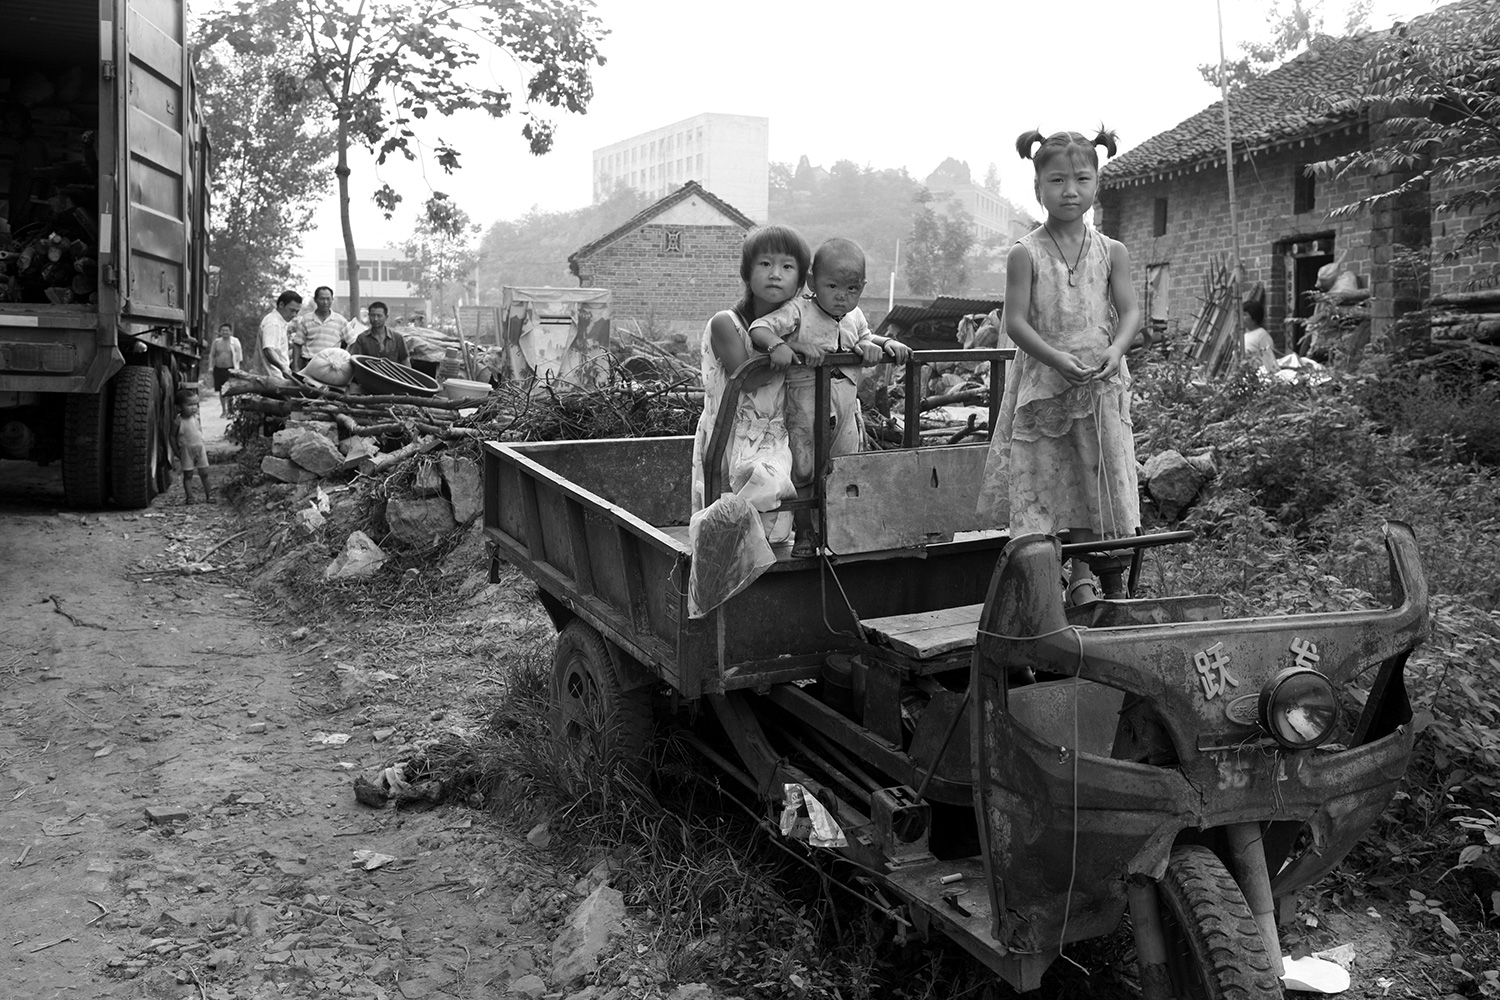 Three children stand in their family's utility vehicle at a demolition site in Jinhe, Xichuan county, Henan province, August 2011, as villagers prepared to move out as part of a relocation program.